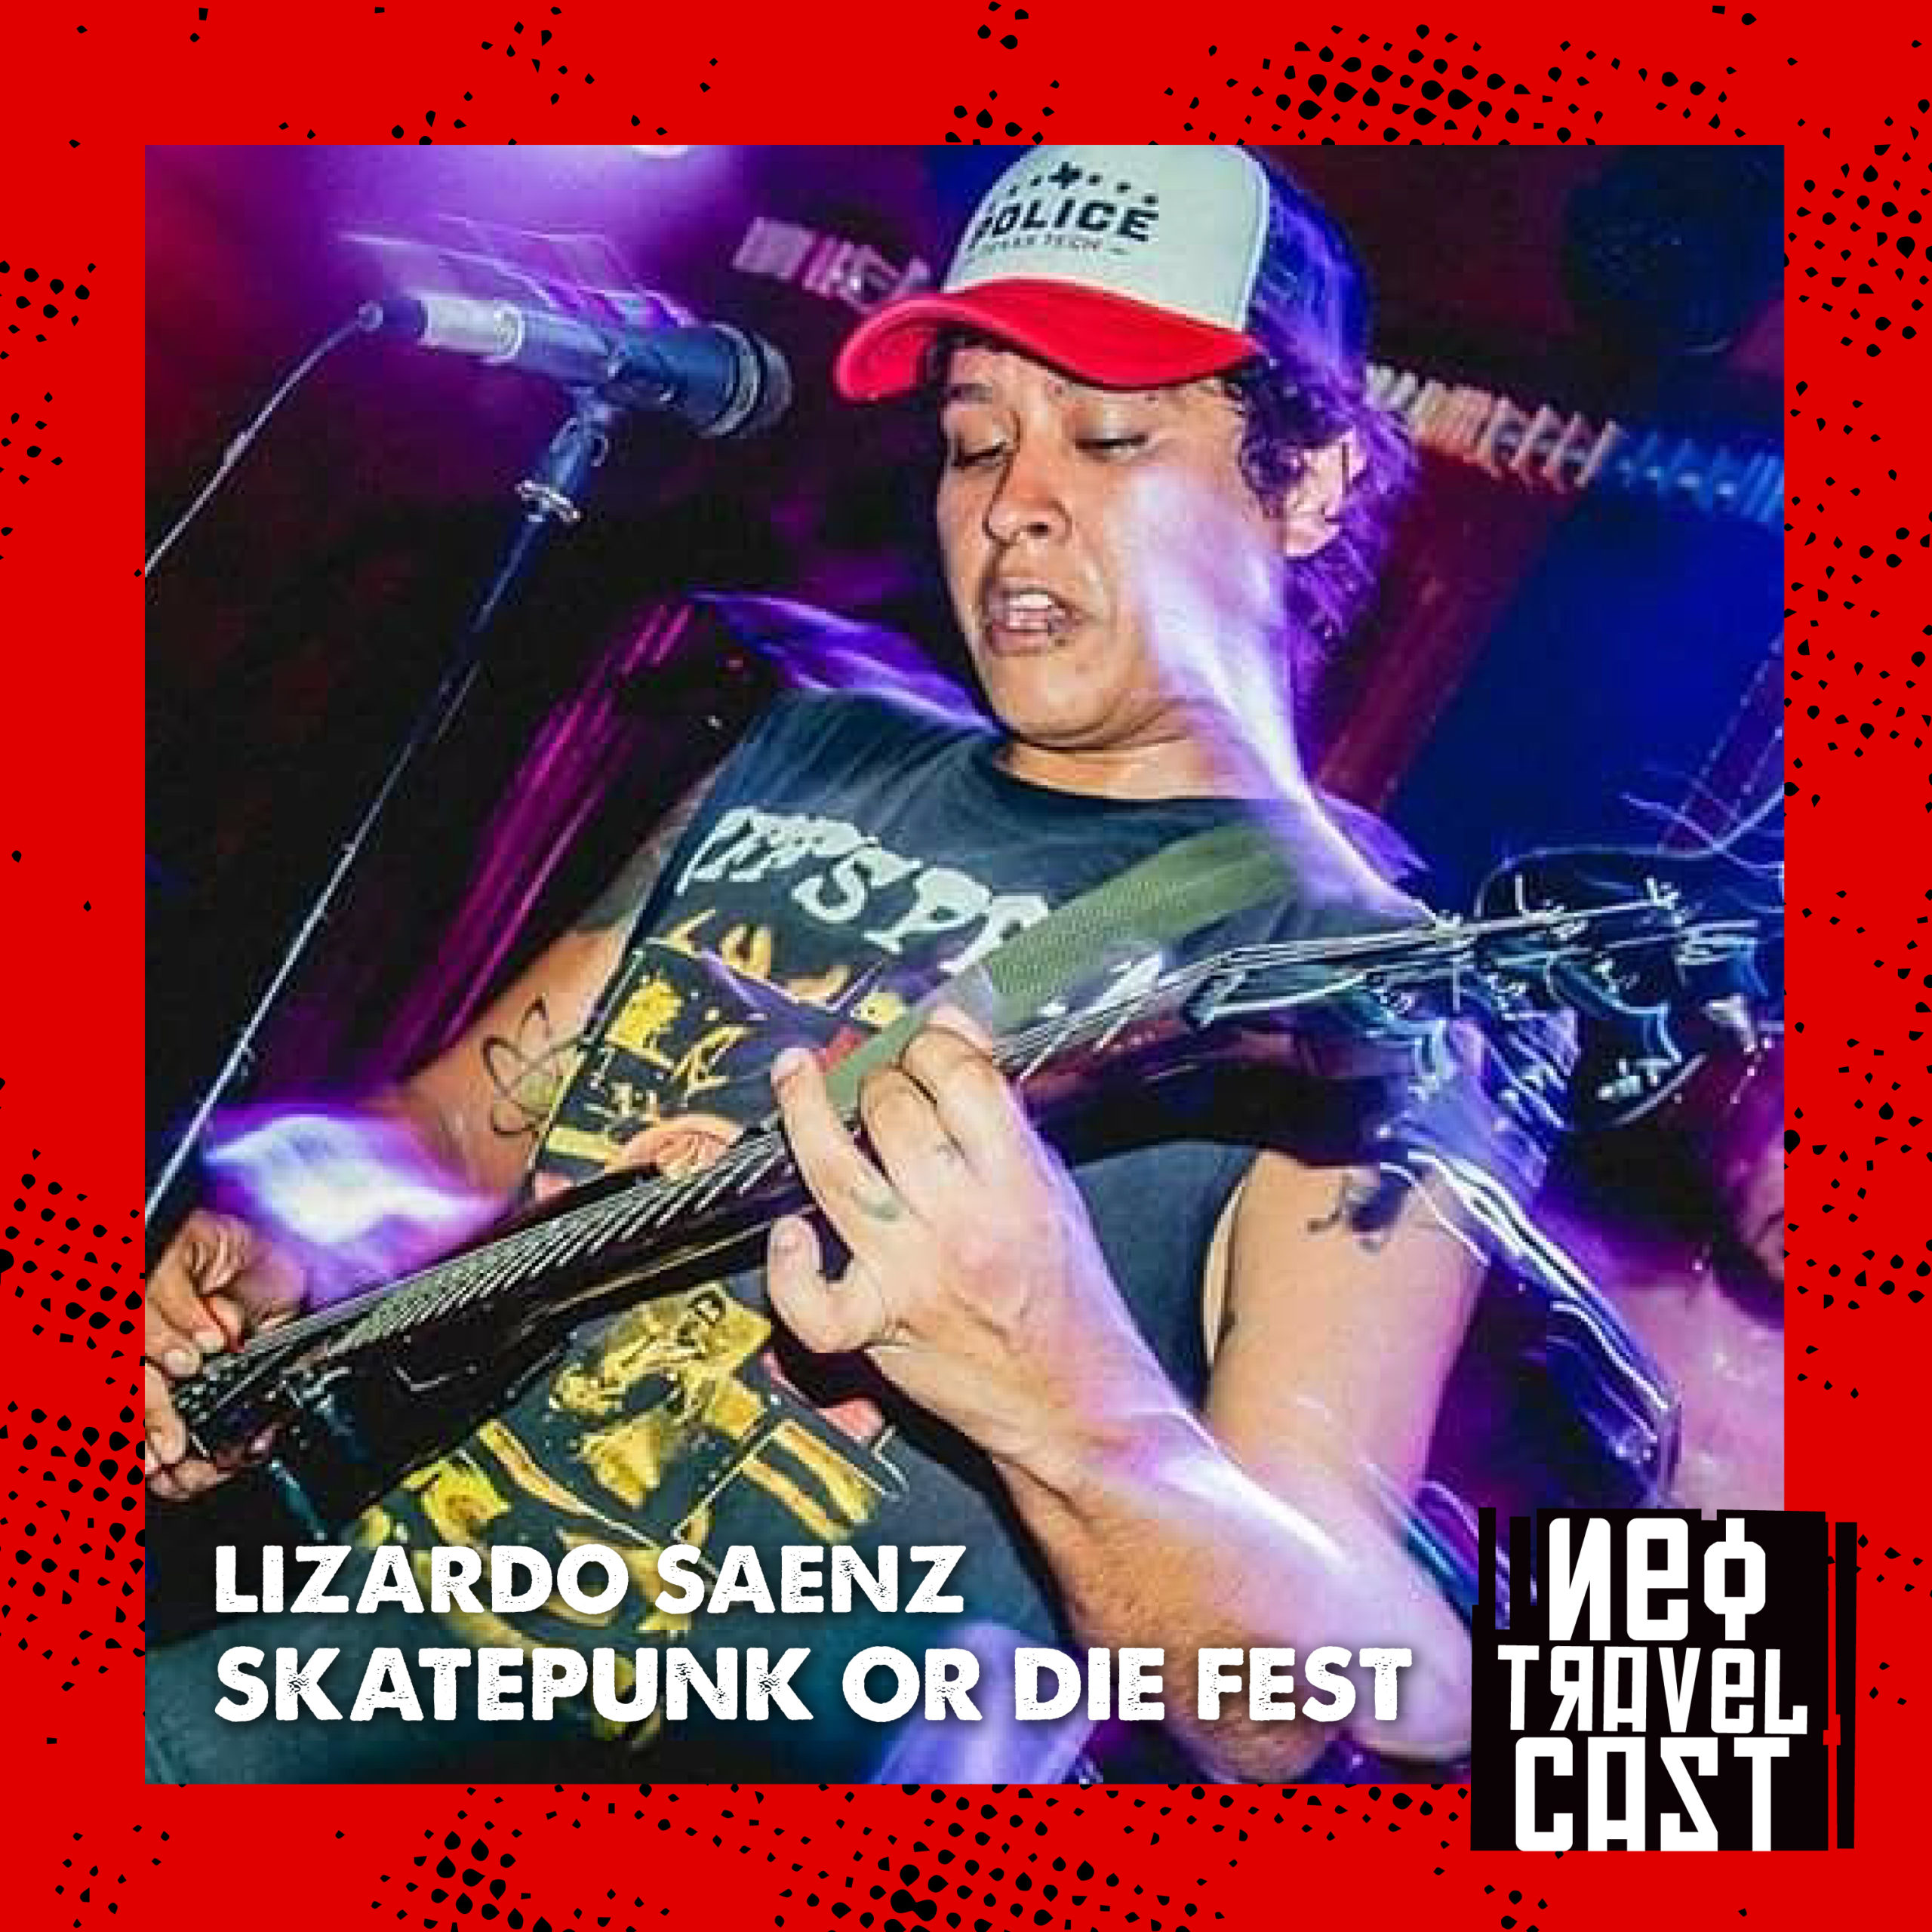 Neo Travel Cast - Skate Punk or Die - Lizardo Saenz